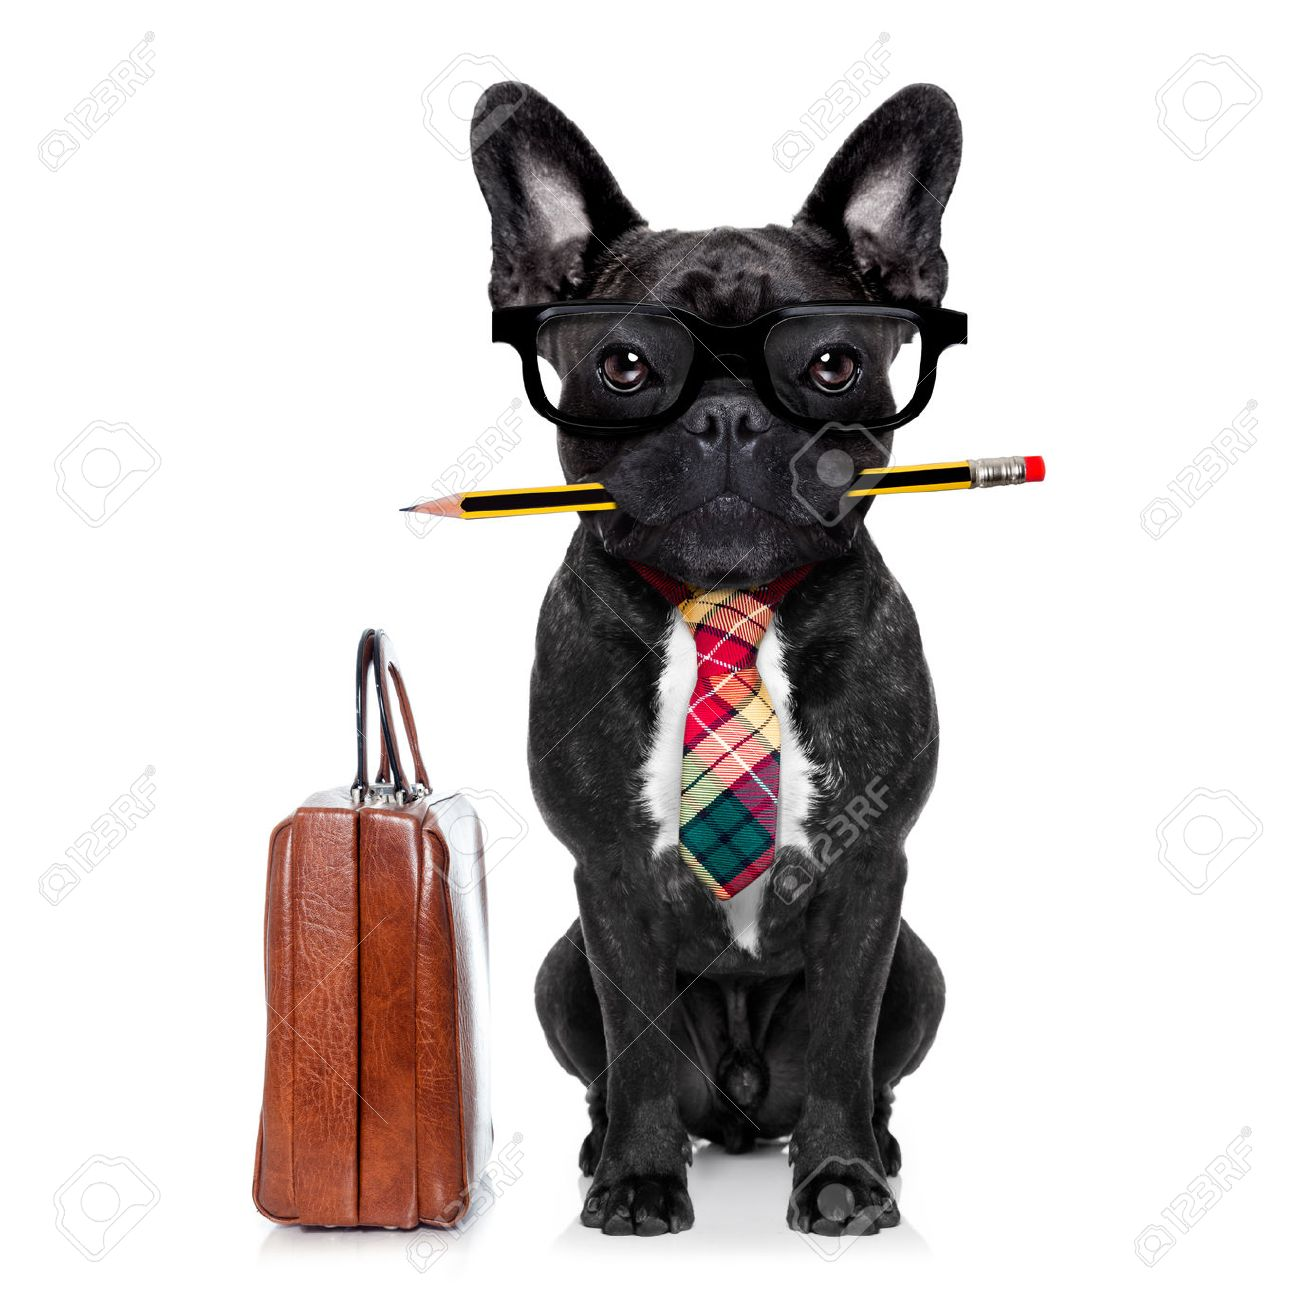 office businessman french bulldog dog with pen or pencil in mouth with bag or suitcase isolated on white background Stock Photo - 43805963